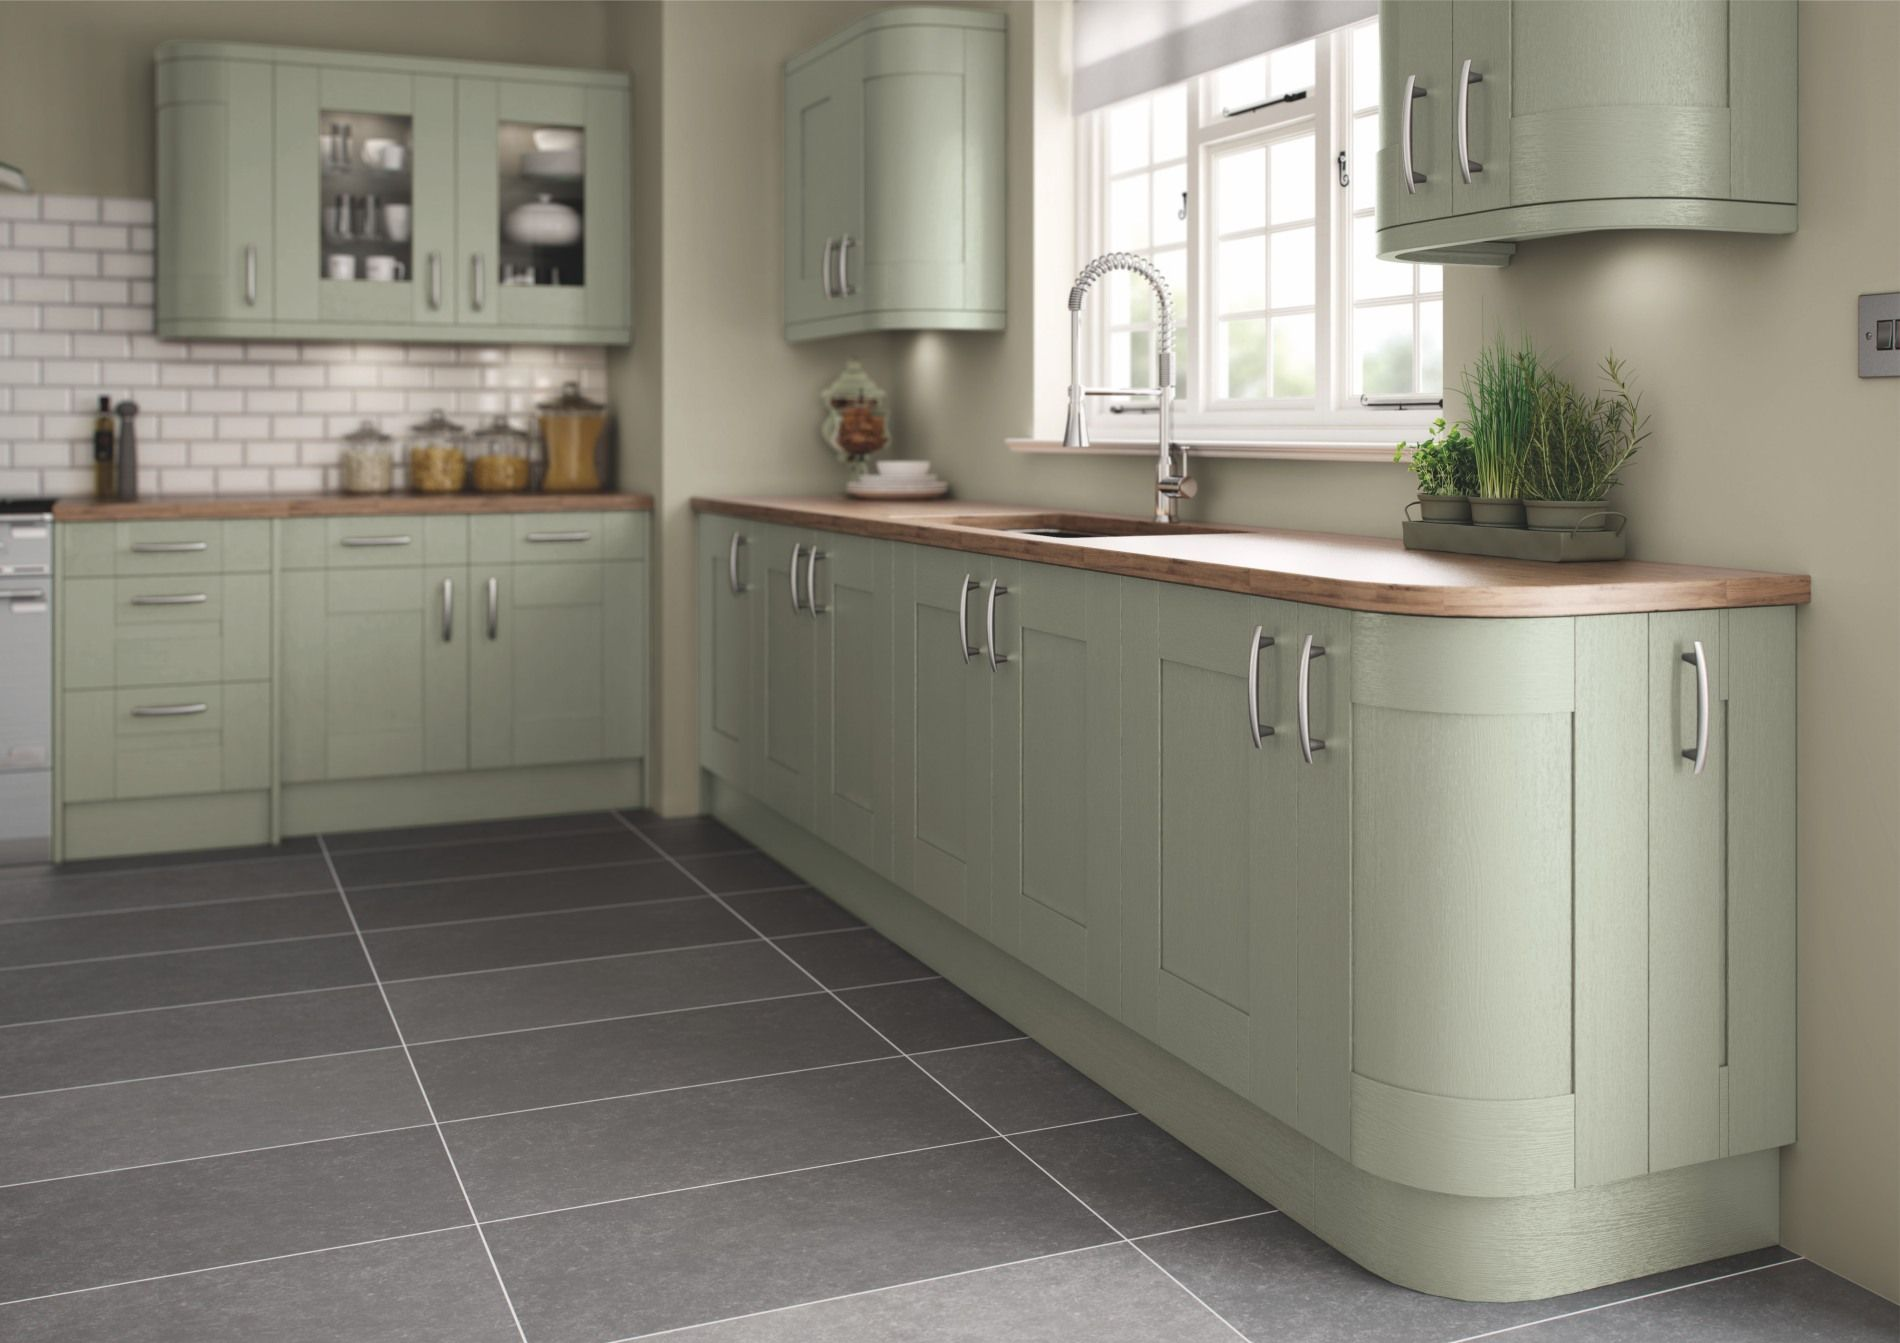 Green painted shaker kitchen | Green kitchen cabinets ...